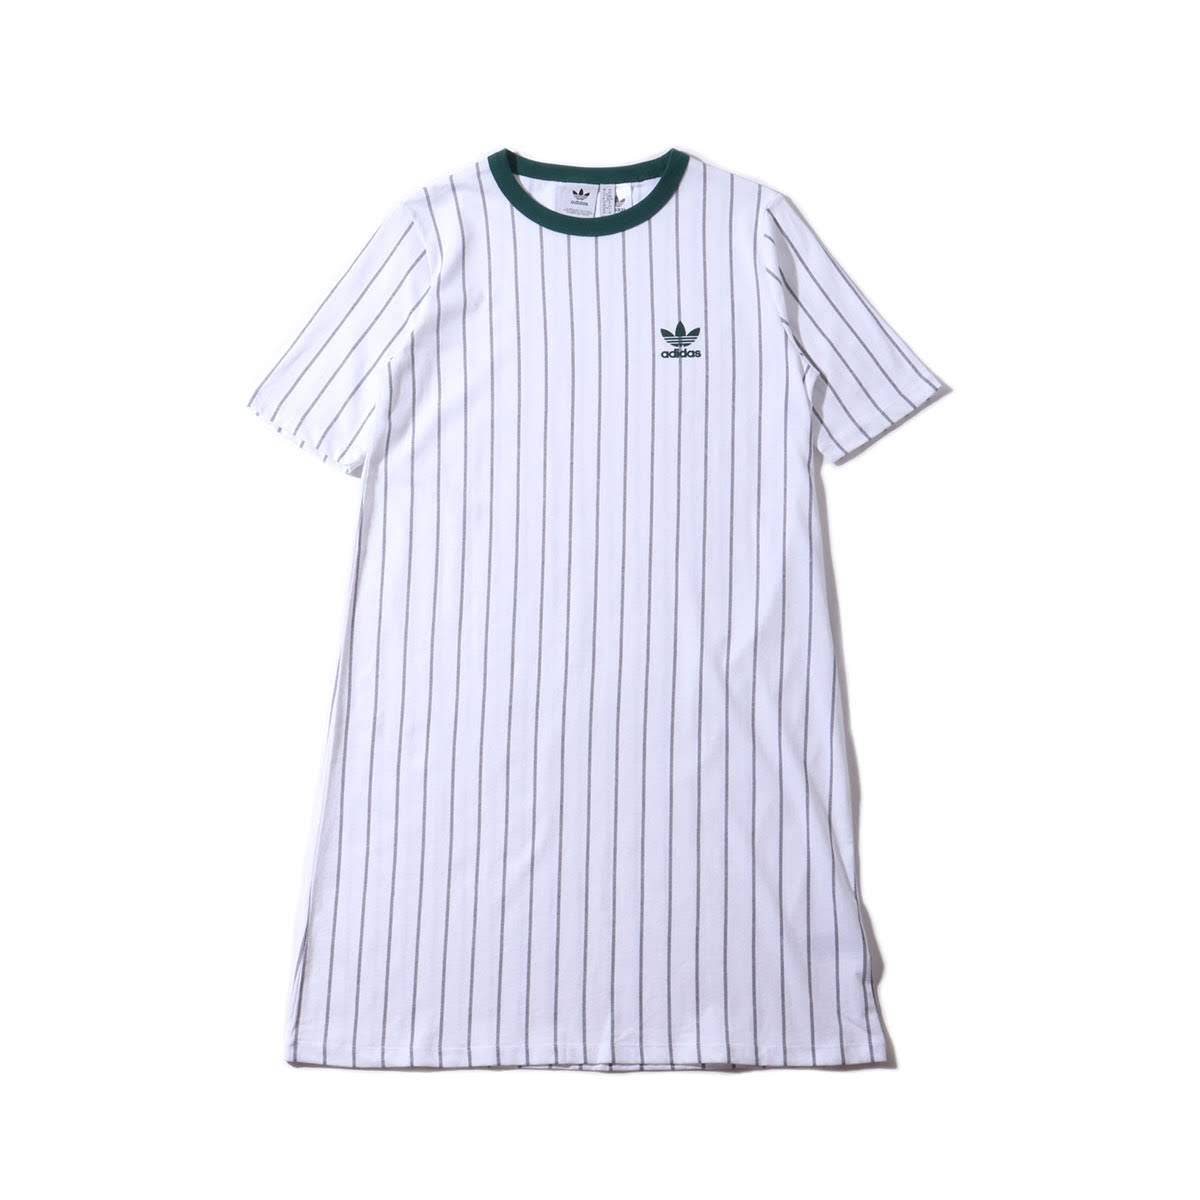 172b5d329 adidas Originals TEE DRESS (WHITE) (Adidas original Steed reply)